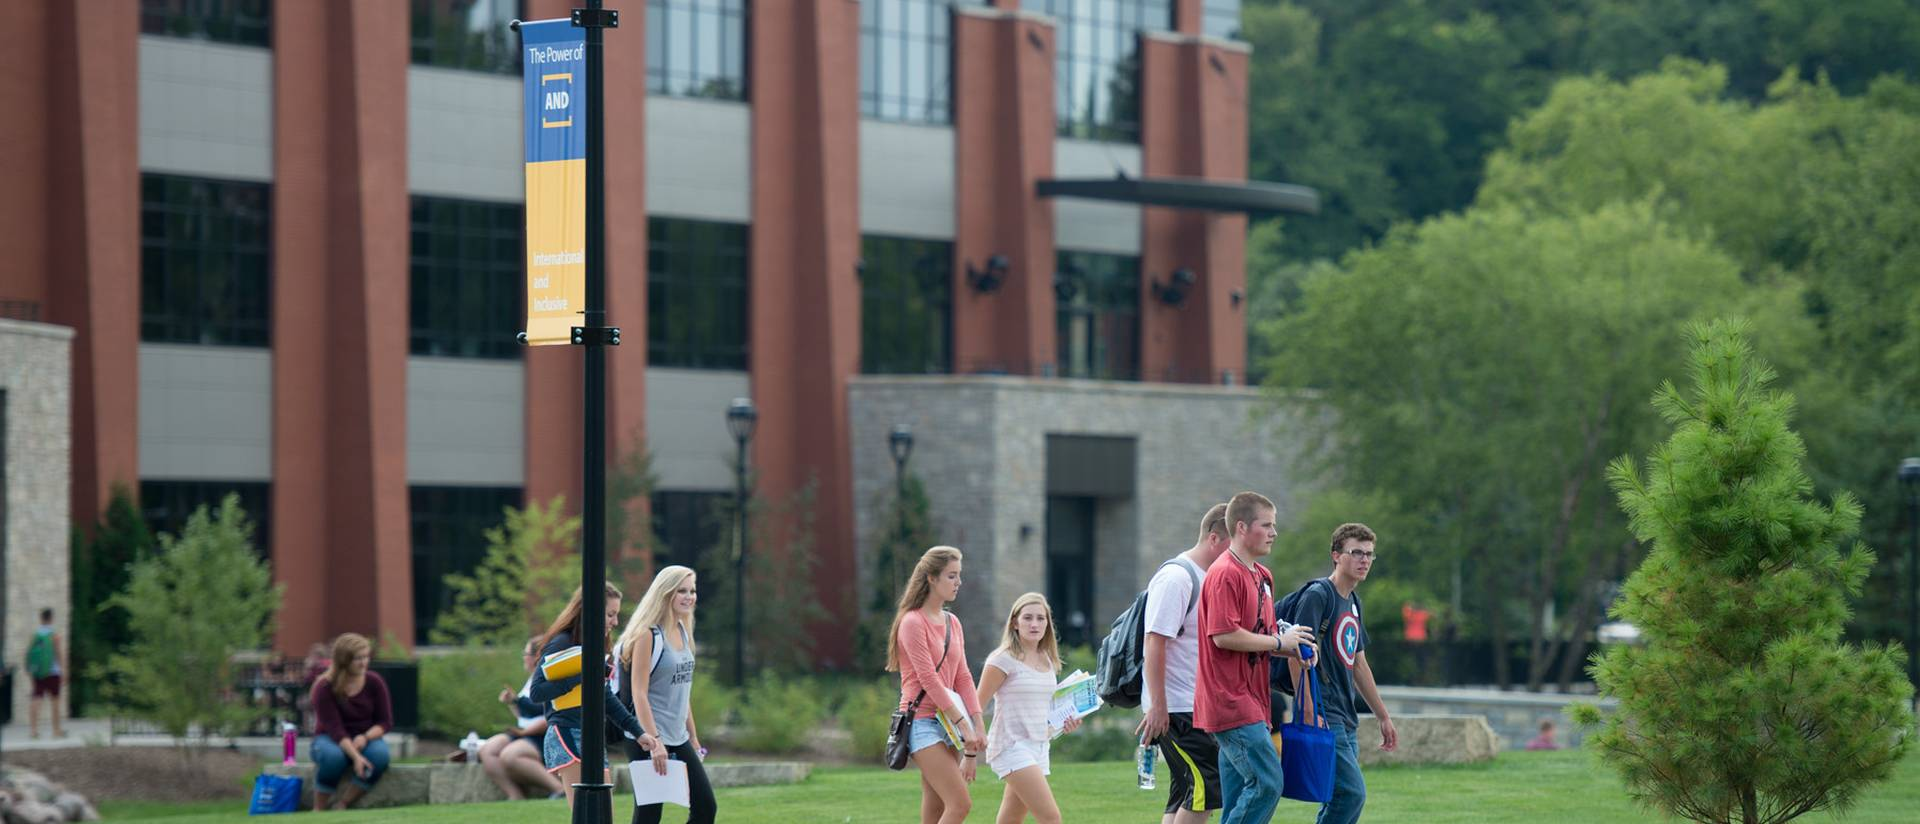 UW-Eau Claire students on campus mall